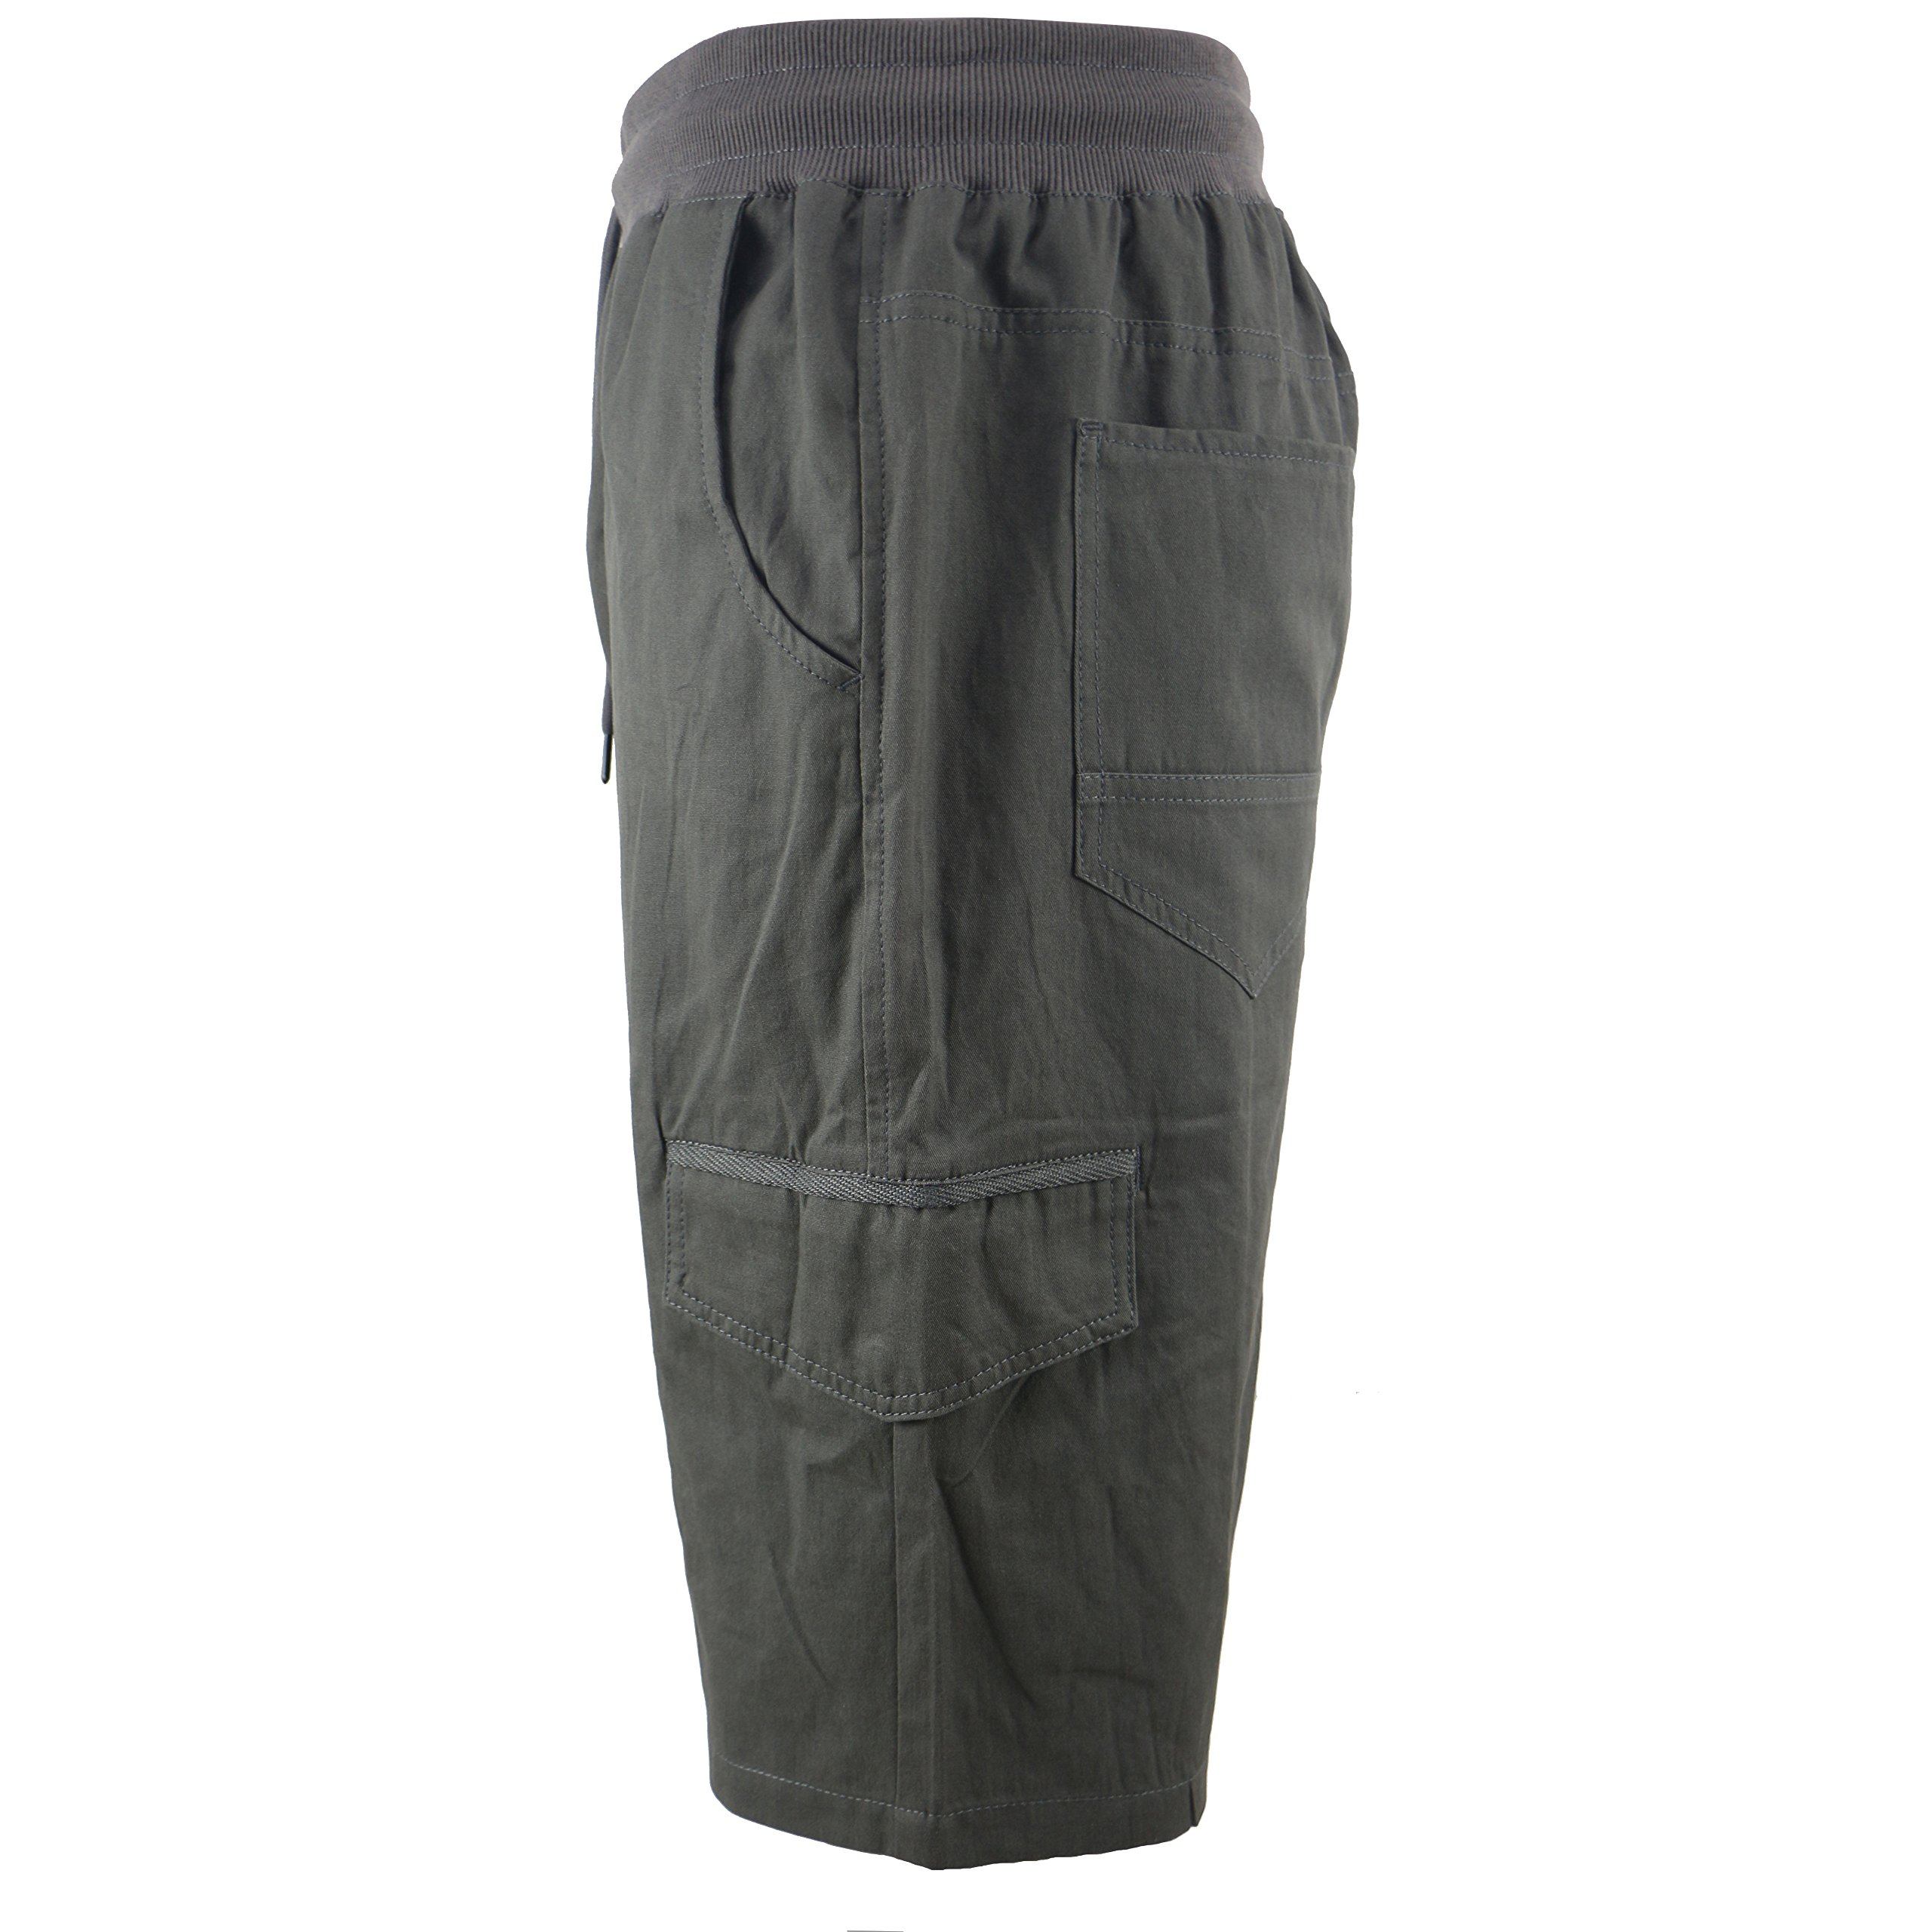 Tanbridge Men's Cotton Cargo Shorts with Pockets Loose Fit Outdoor Wear Twill Elastic Waist Shorts Grey 36 by Tanbridge (Image #2)